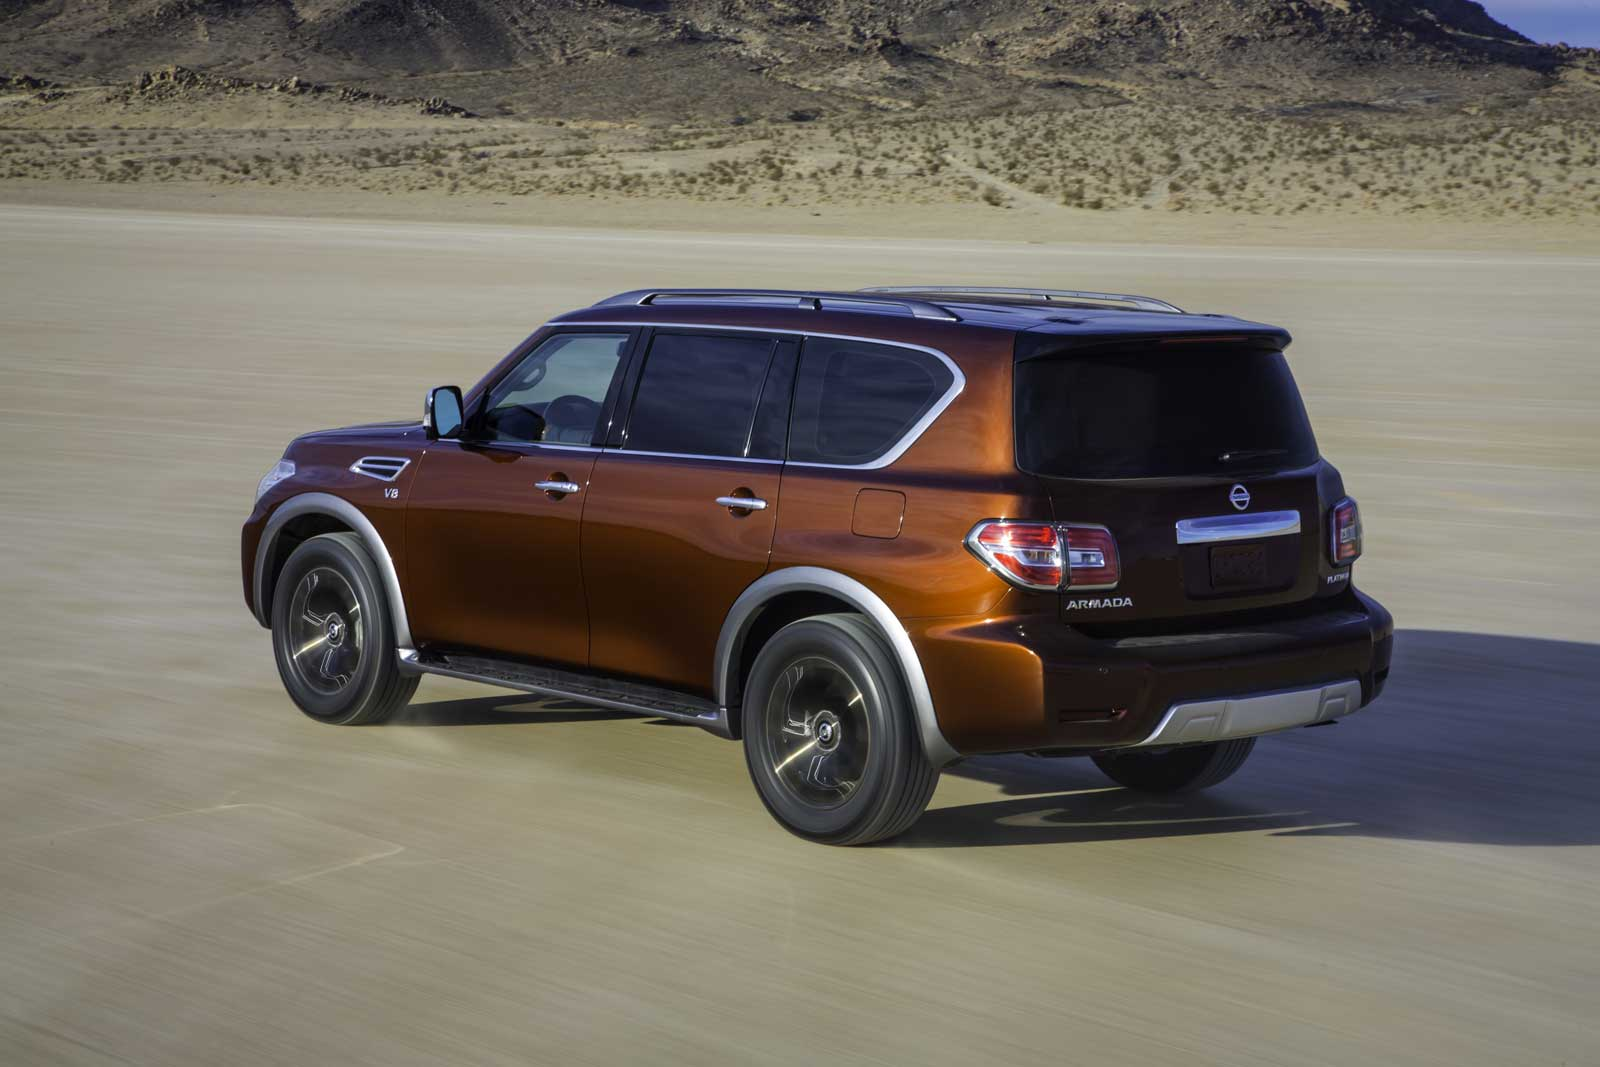 2017 Nissan Armada Unveiled with 8,500-Pound Towing Capacity